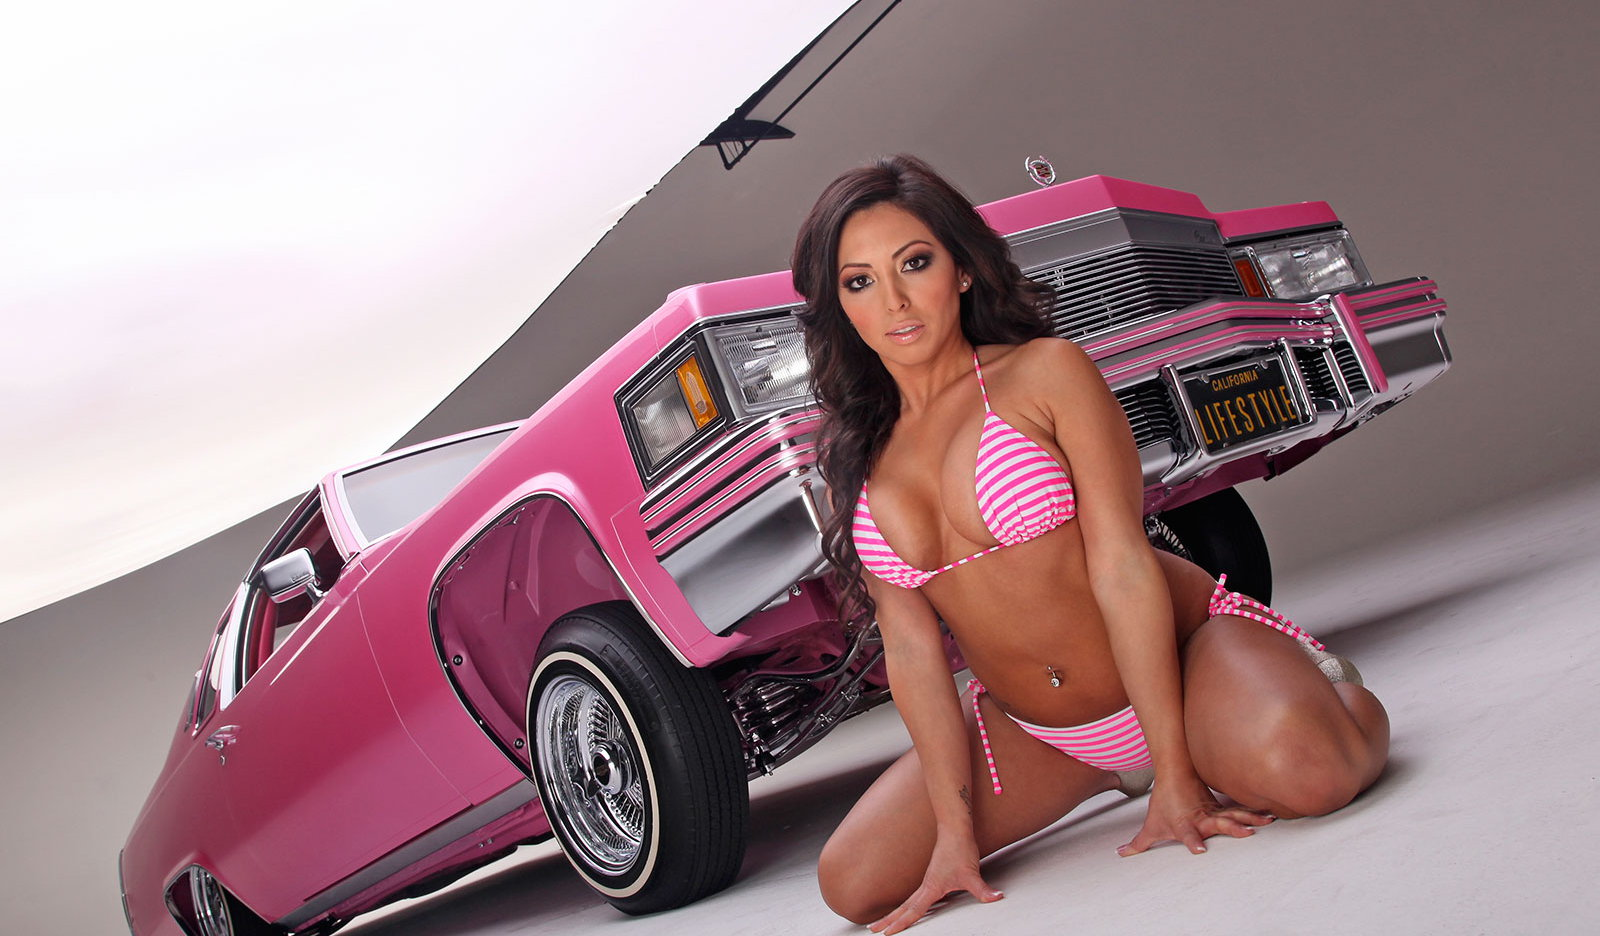 Pee lowrider models who posed naked nude muscle girls